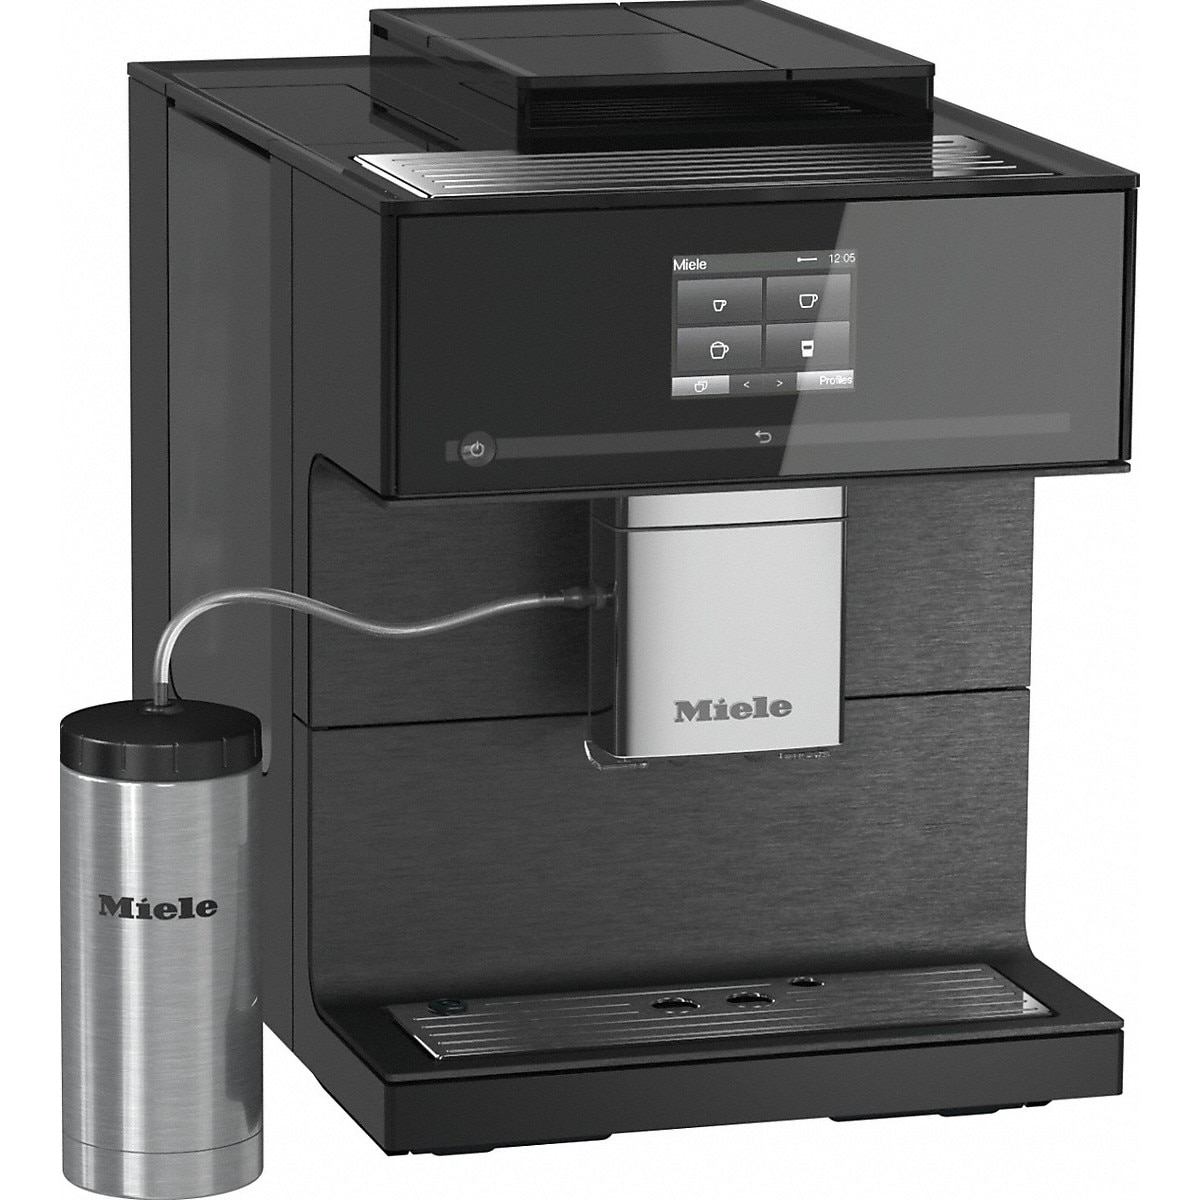 Fotografie Espressor Miele CM 7750, One Touch for Two, Aromatic SystemFresh, AutoDescale, WLAN,  2.2 l, 3 recipiente cafea, Negru